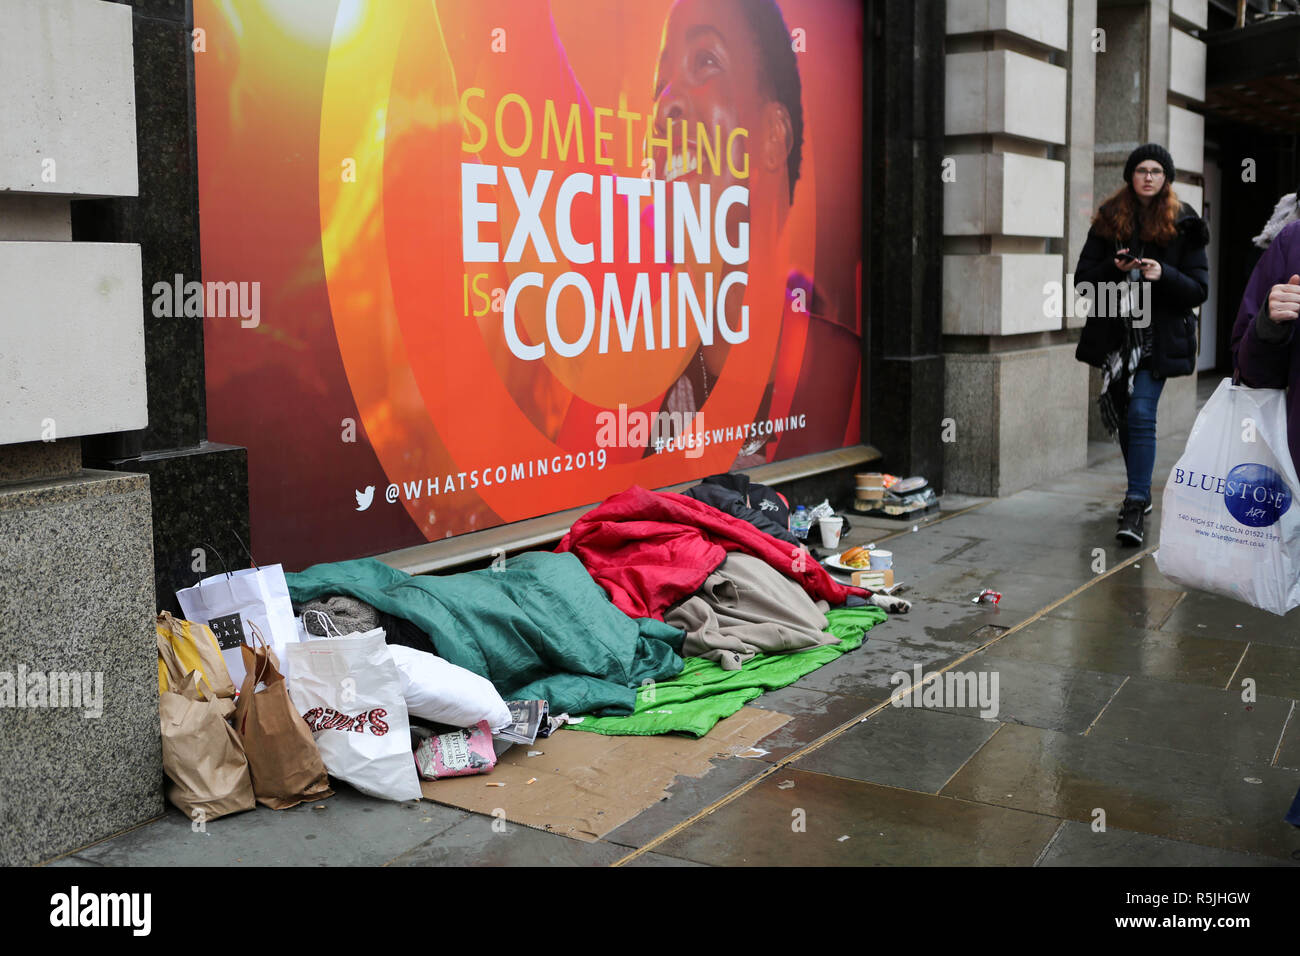 Regents Street, London, UK1st Dec, 2018. A homeless person and belongings asleep, as people walk by and do their Christmas shopping. Penelope Barritt/Alamy Live News Stock Photo